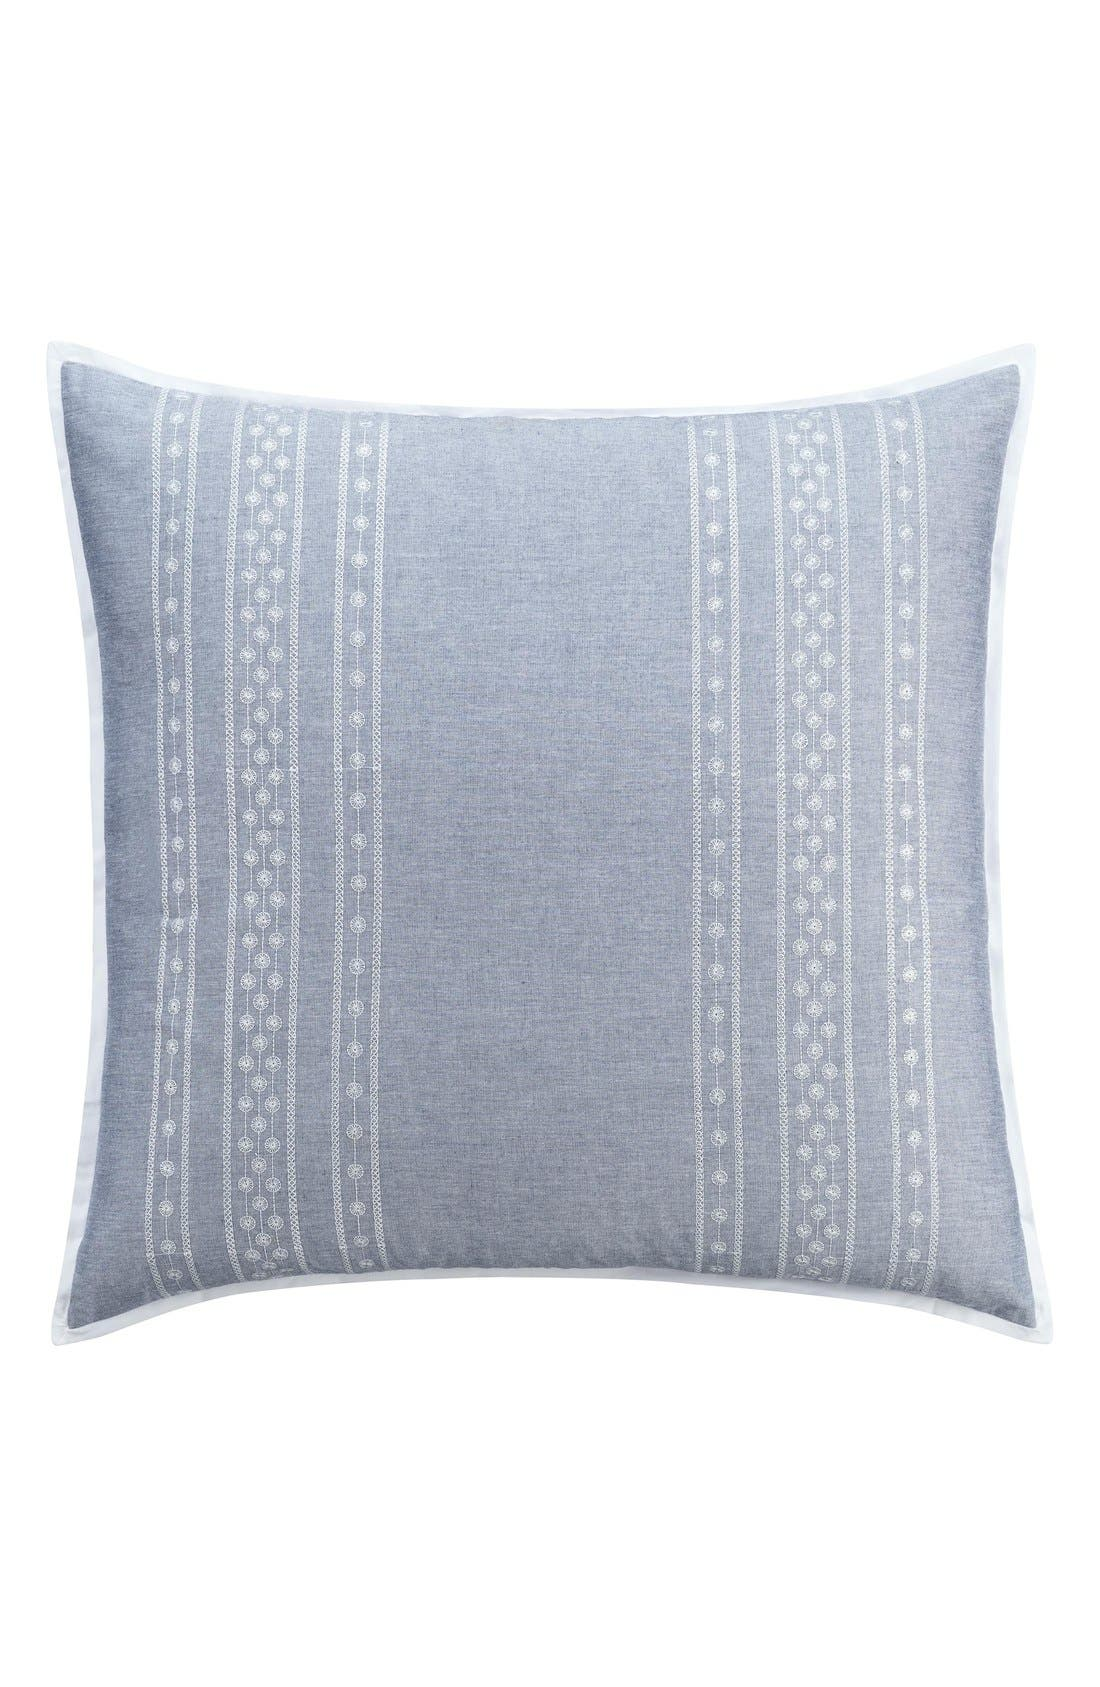 'Chambray Dot' Euro Sham,                         Main,                         color, Blue